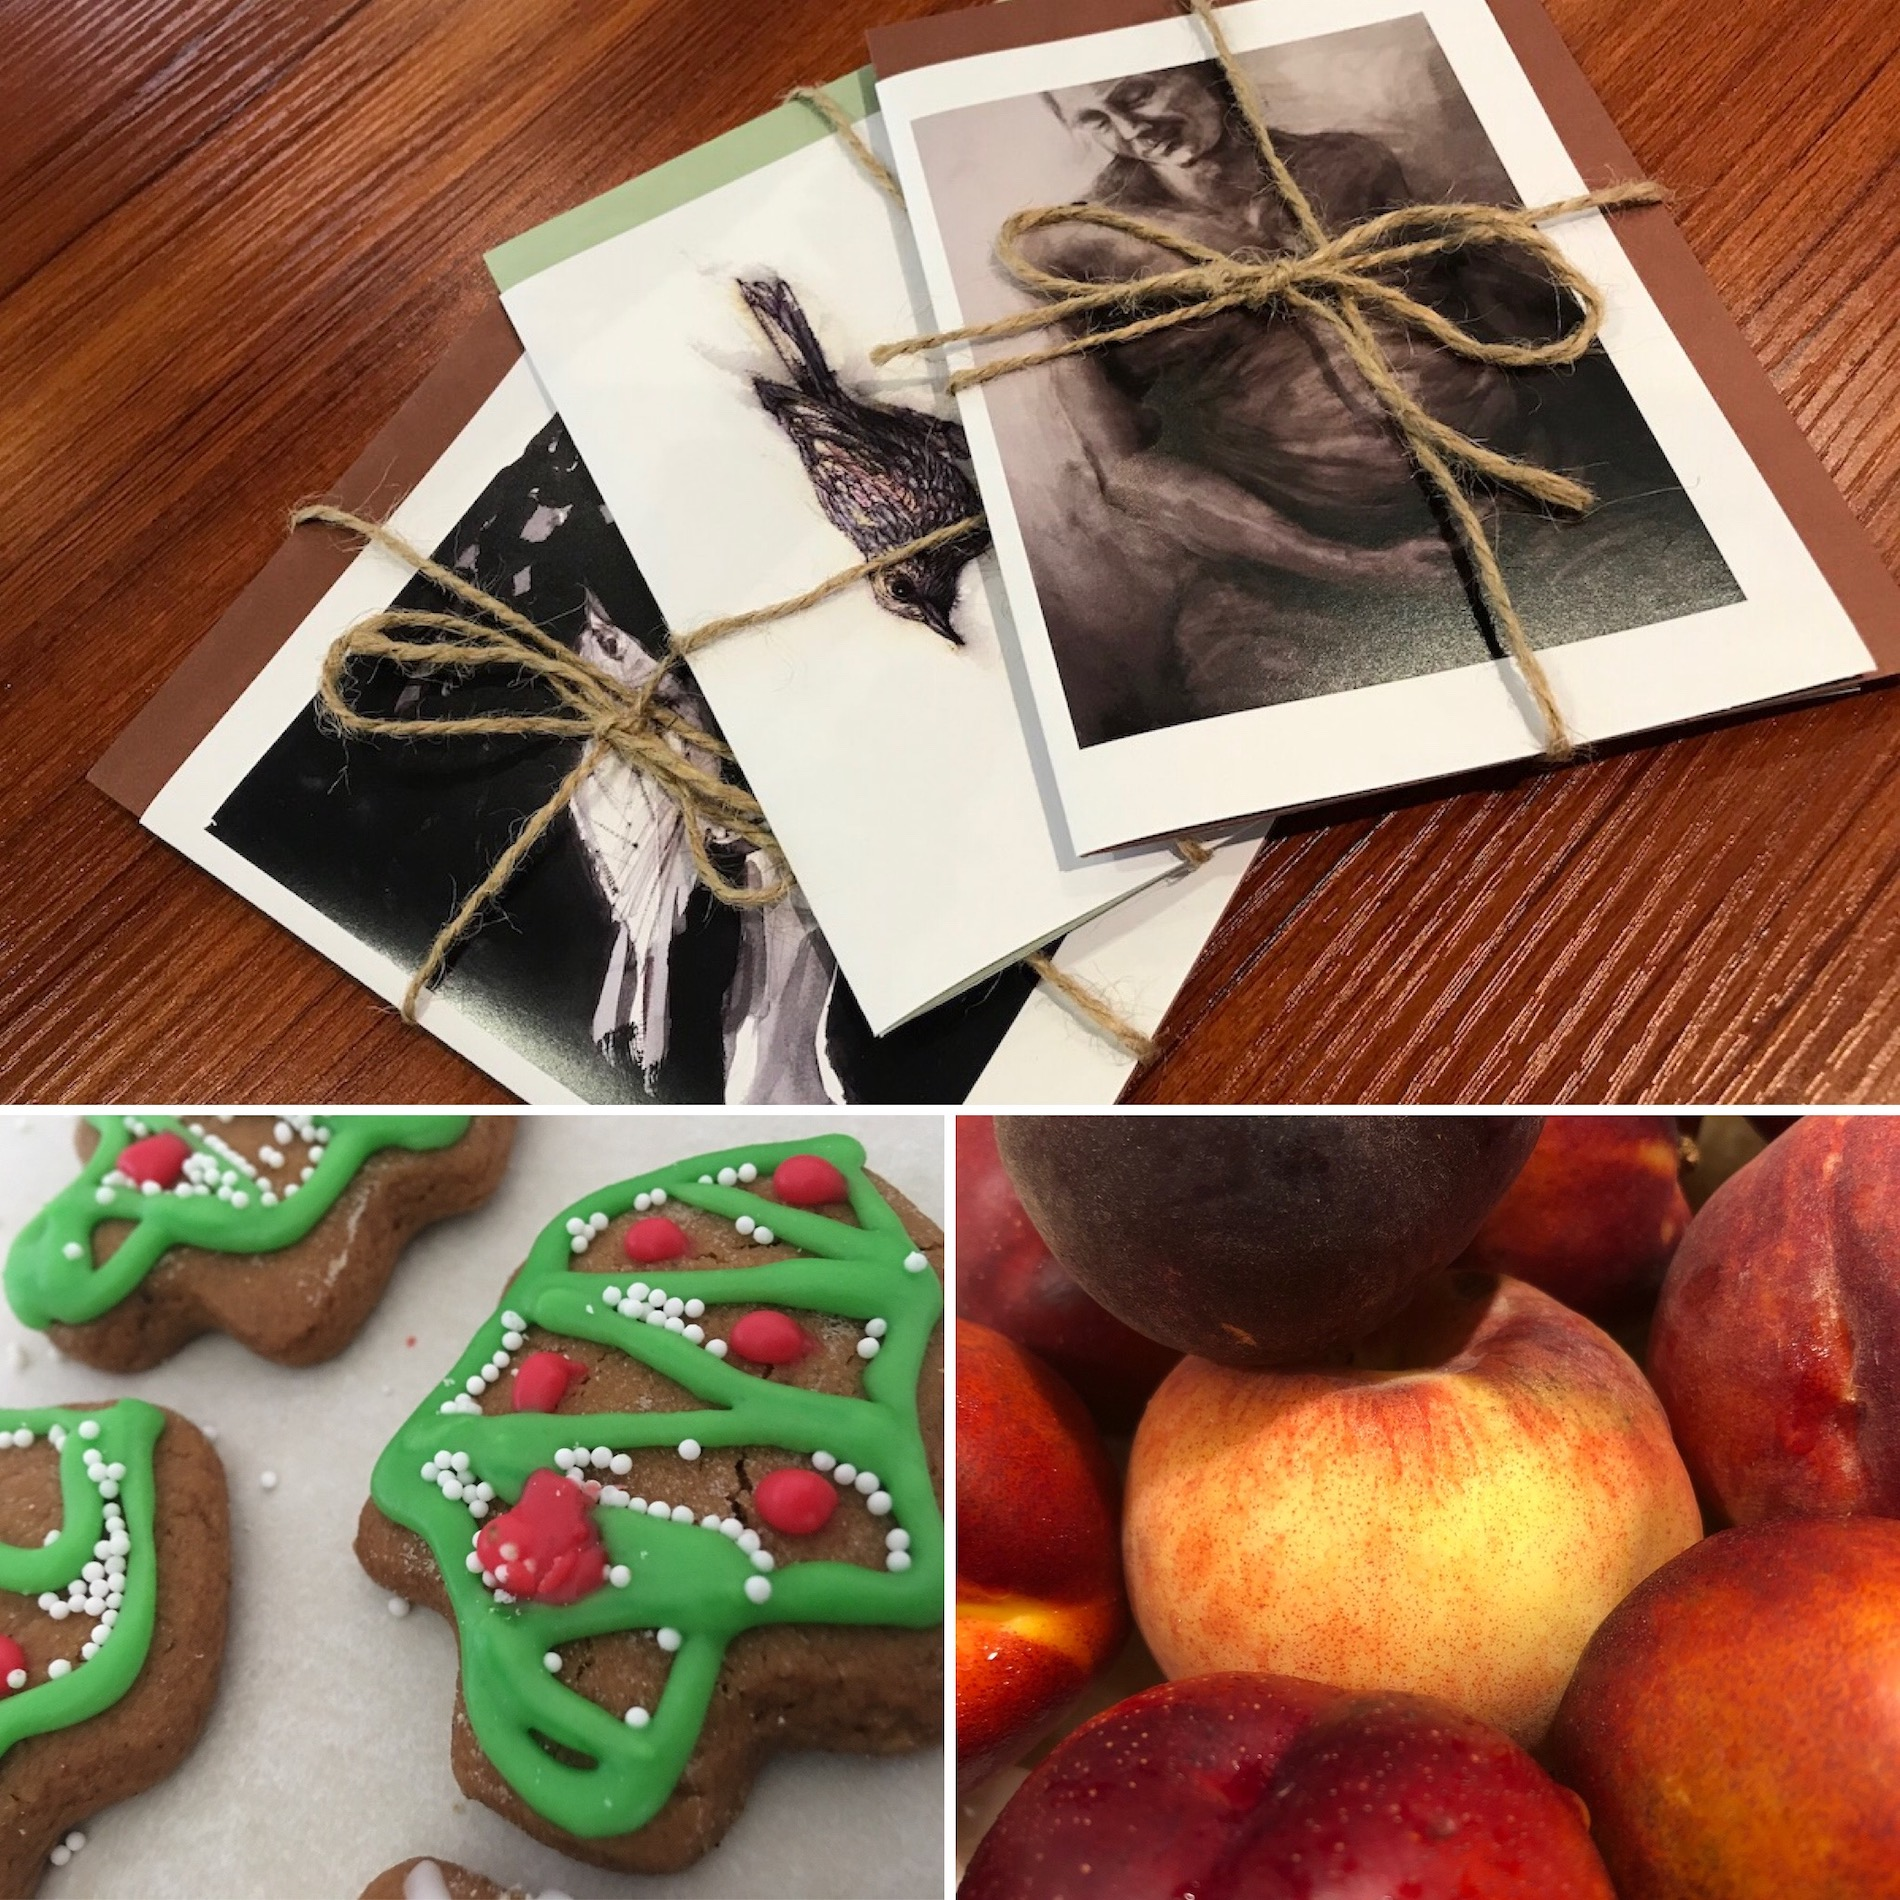 A collage of three photos. Top photo is hand drawn cards packaged to give. Underneath are two smaller photos, one of home made gingerbread Christmas tree cookies and the other of fruit.